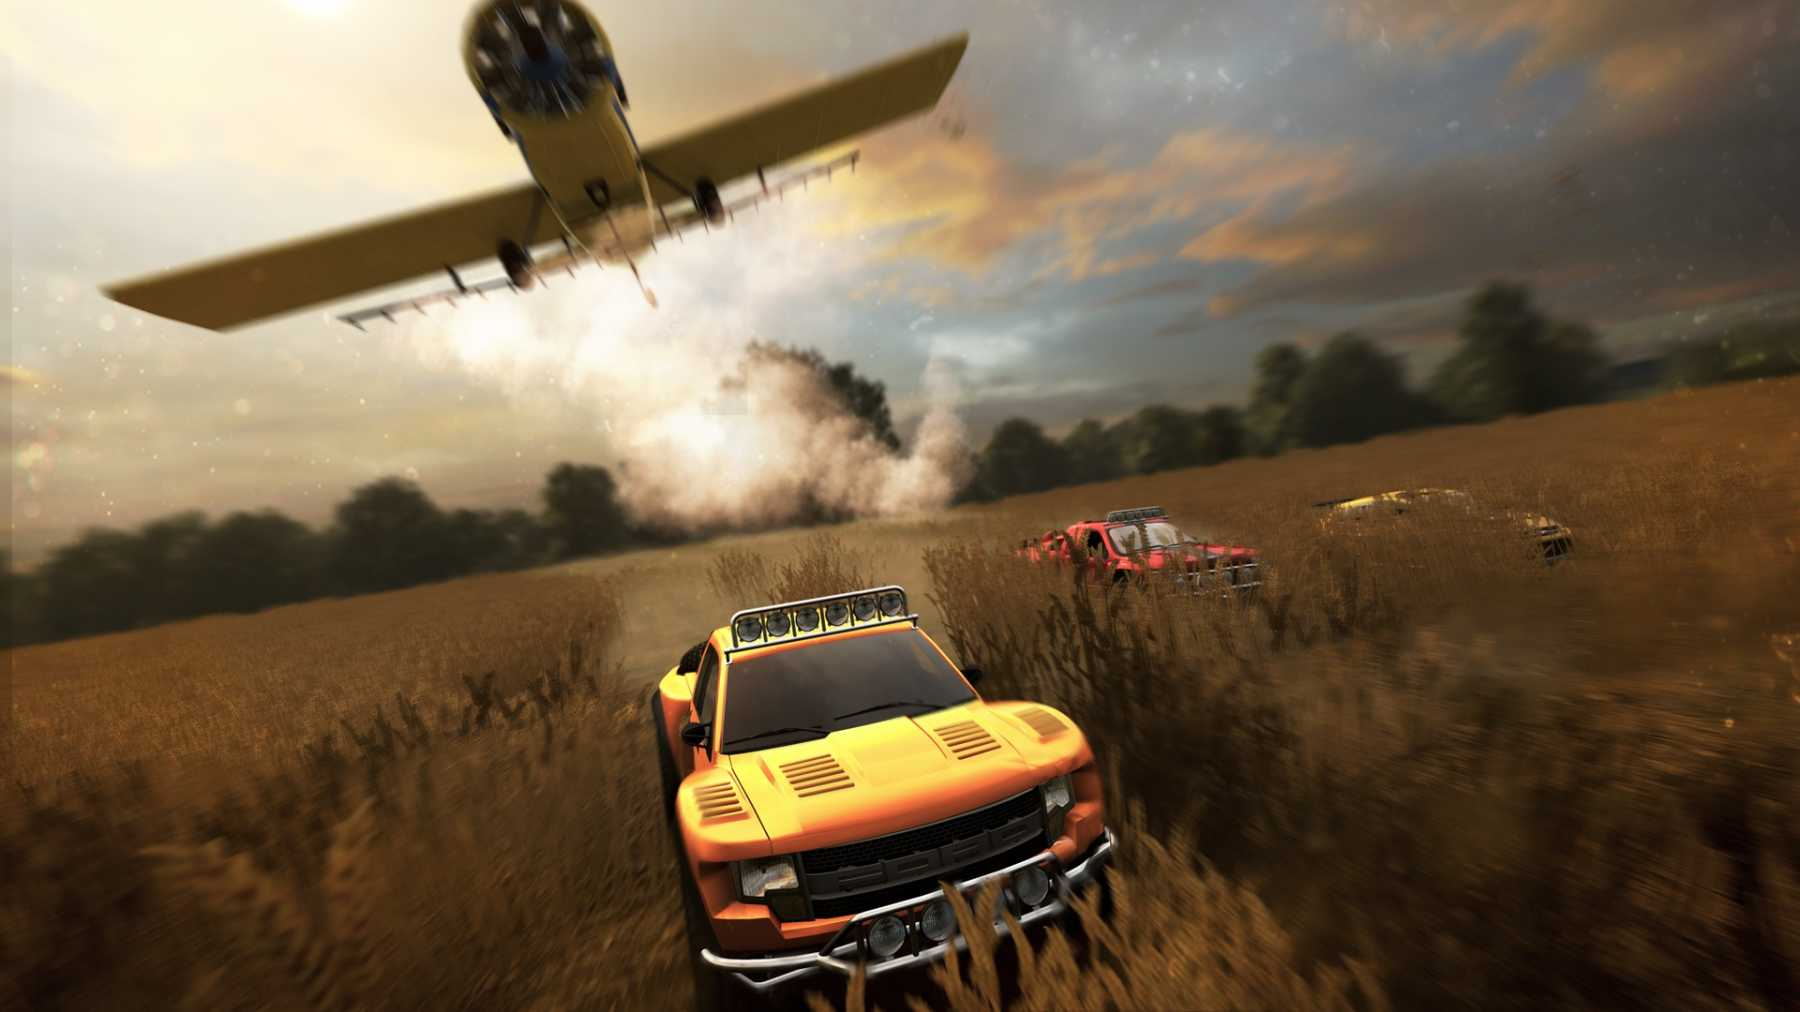 Ubisoft Announces The Delayed Release Of Another Next-Gen Game The Crew